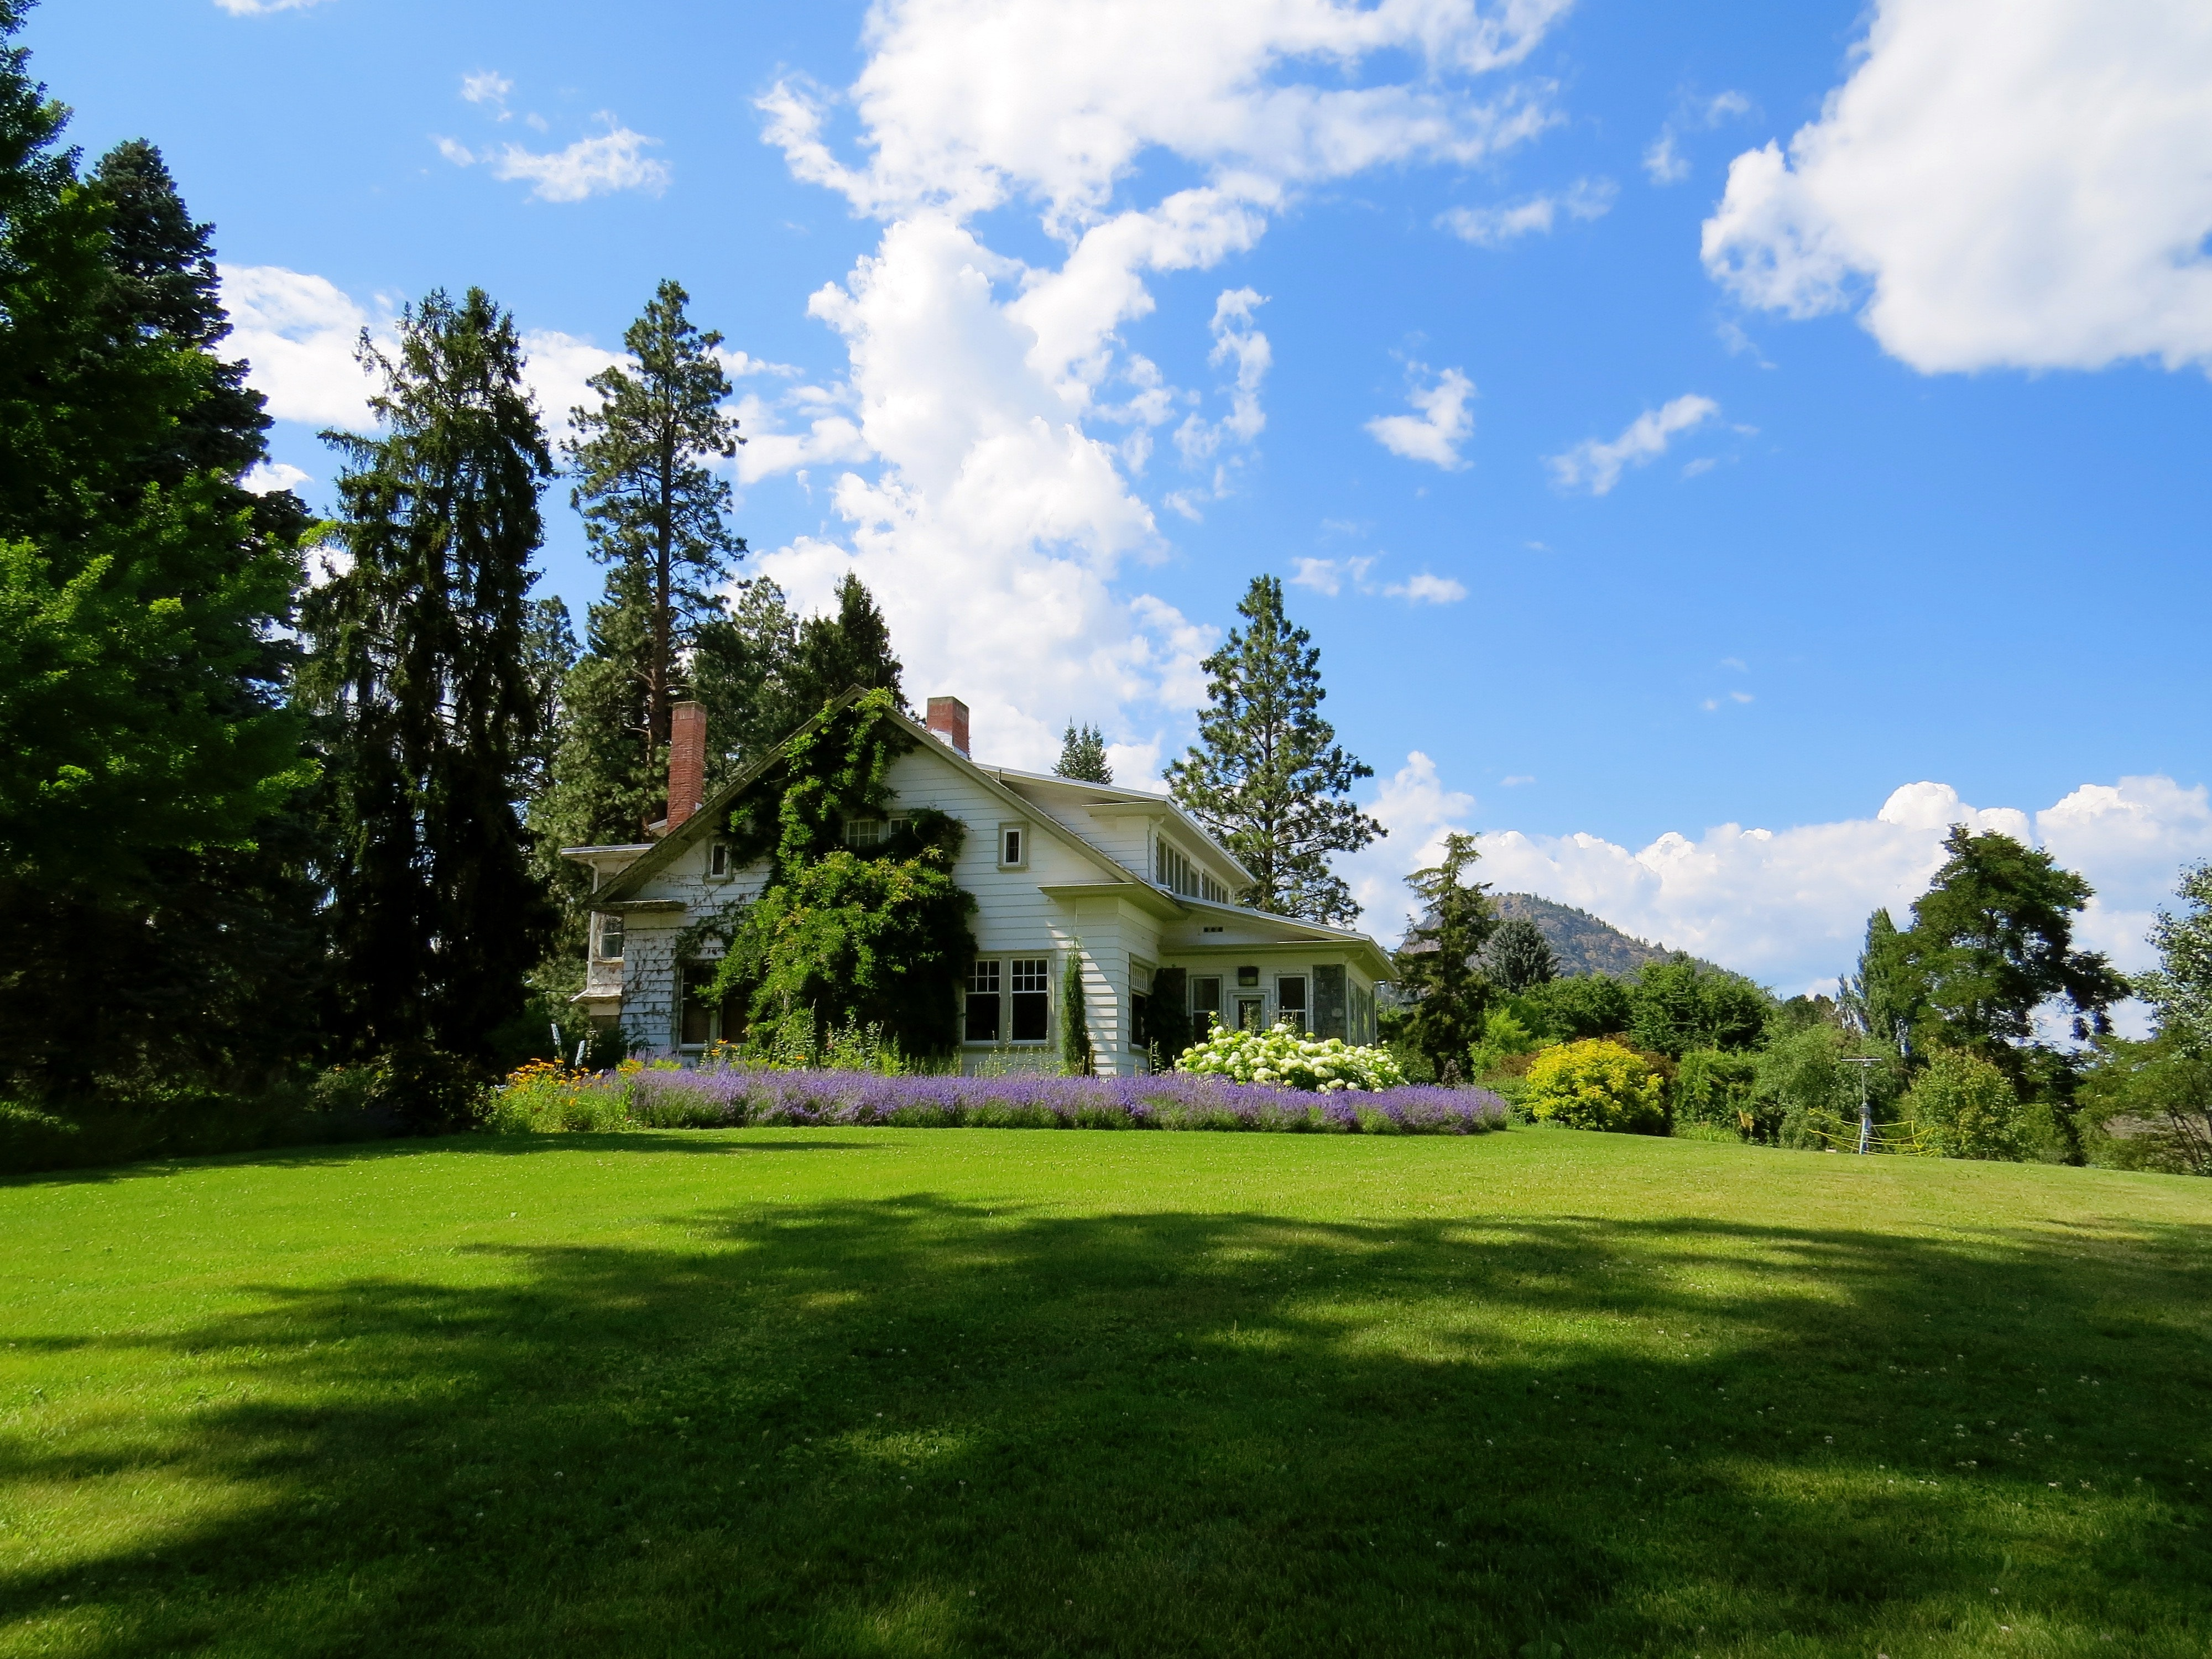 lawn landscaping for home sellers